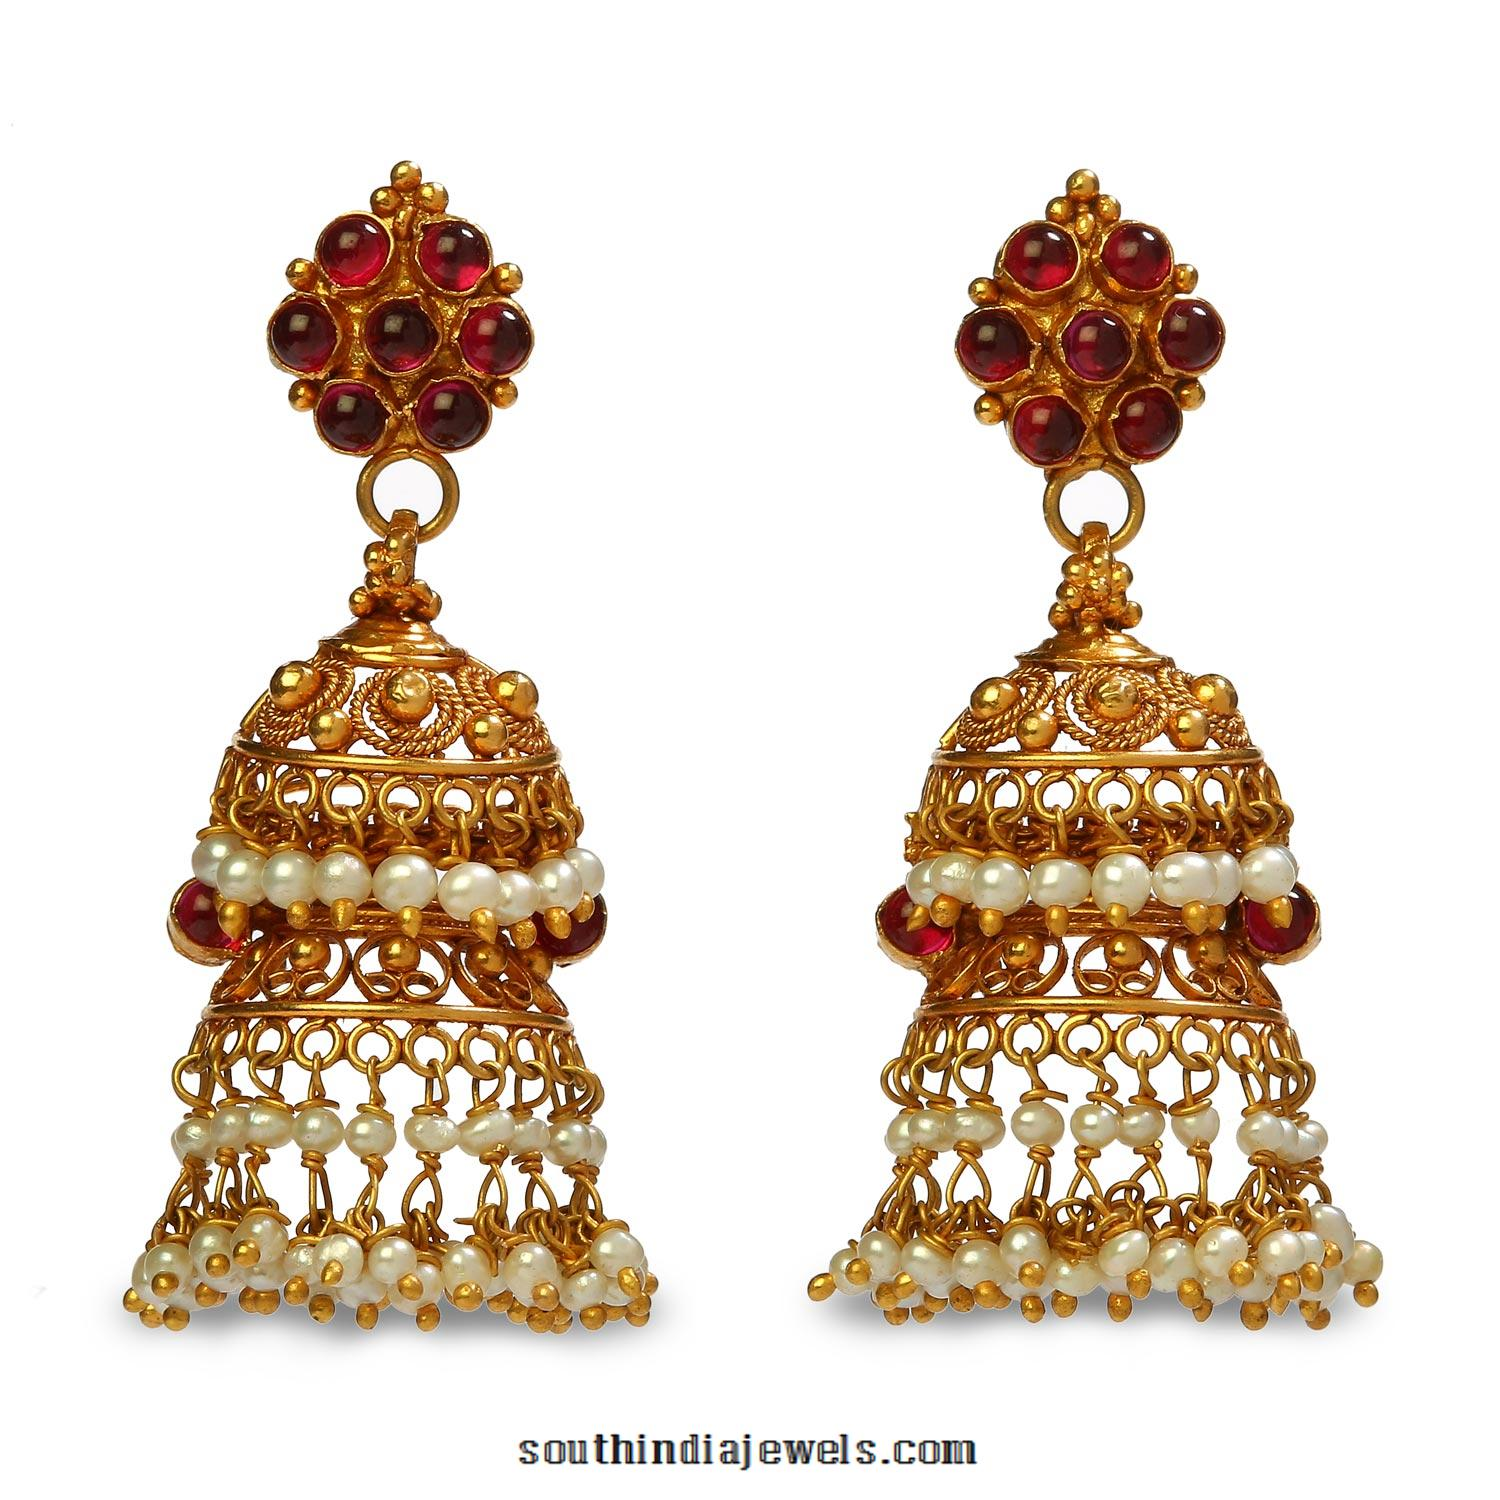 22K Gold Jhumka Earrings from Bhima Jewels ~ South India Jewels